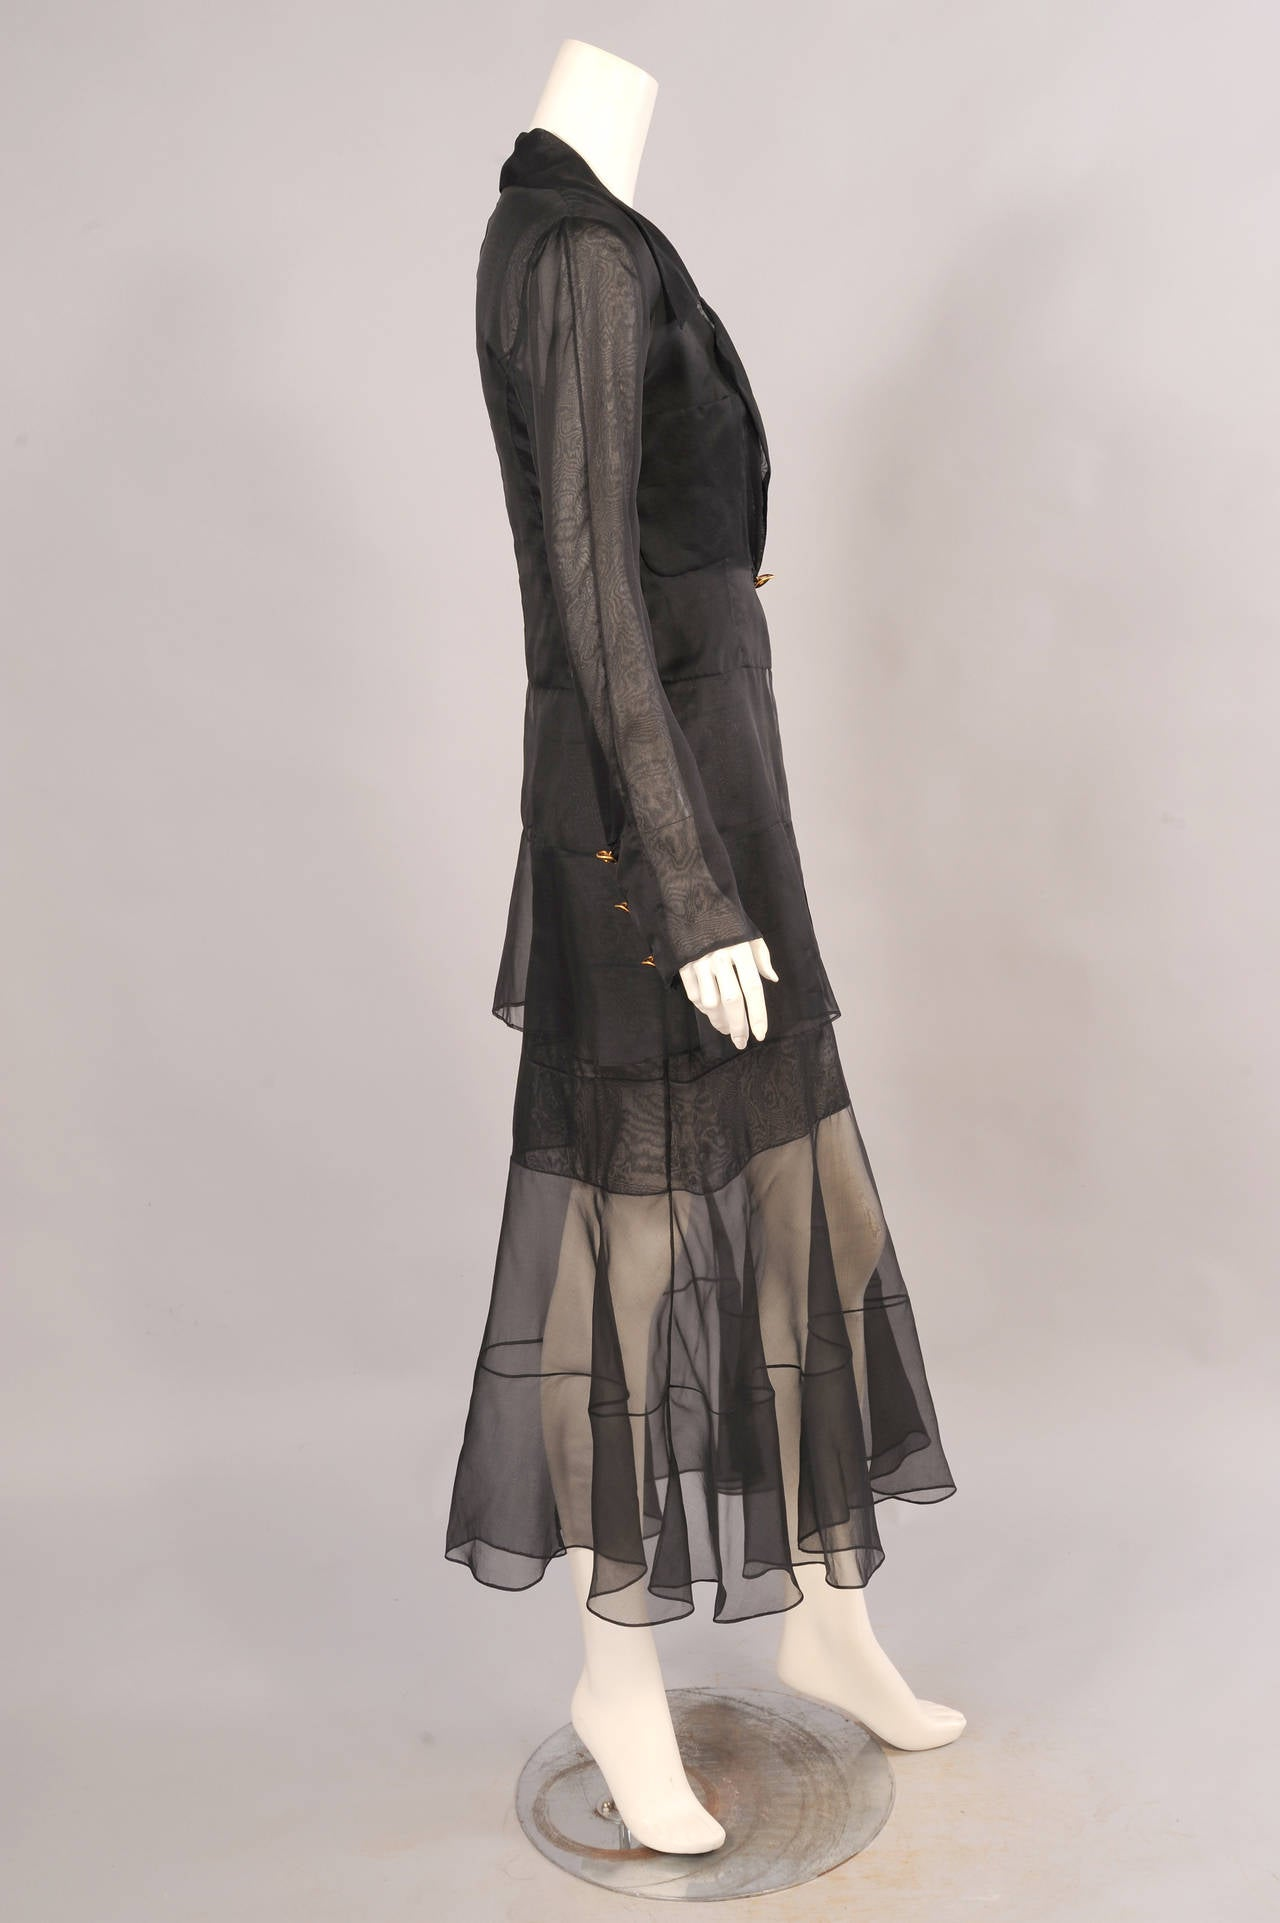 Inspired by the 1920's designs of Coco Chanel this sexy sheer black silk dress in single and double layers of silk creates a very eye catching dress and jacket ensemble. The dress is sewn in vertical panels at the top and double horizontal panels on